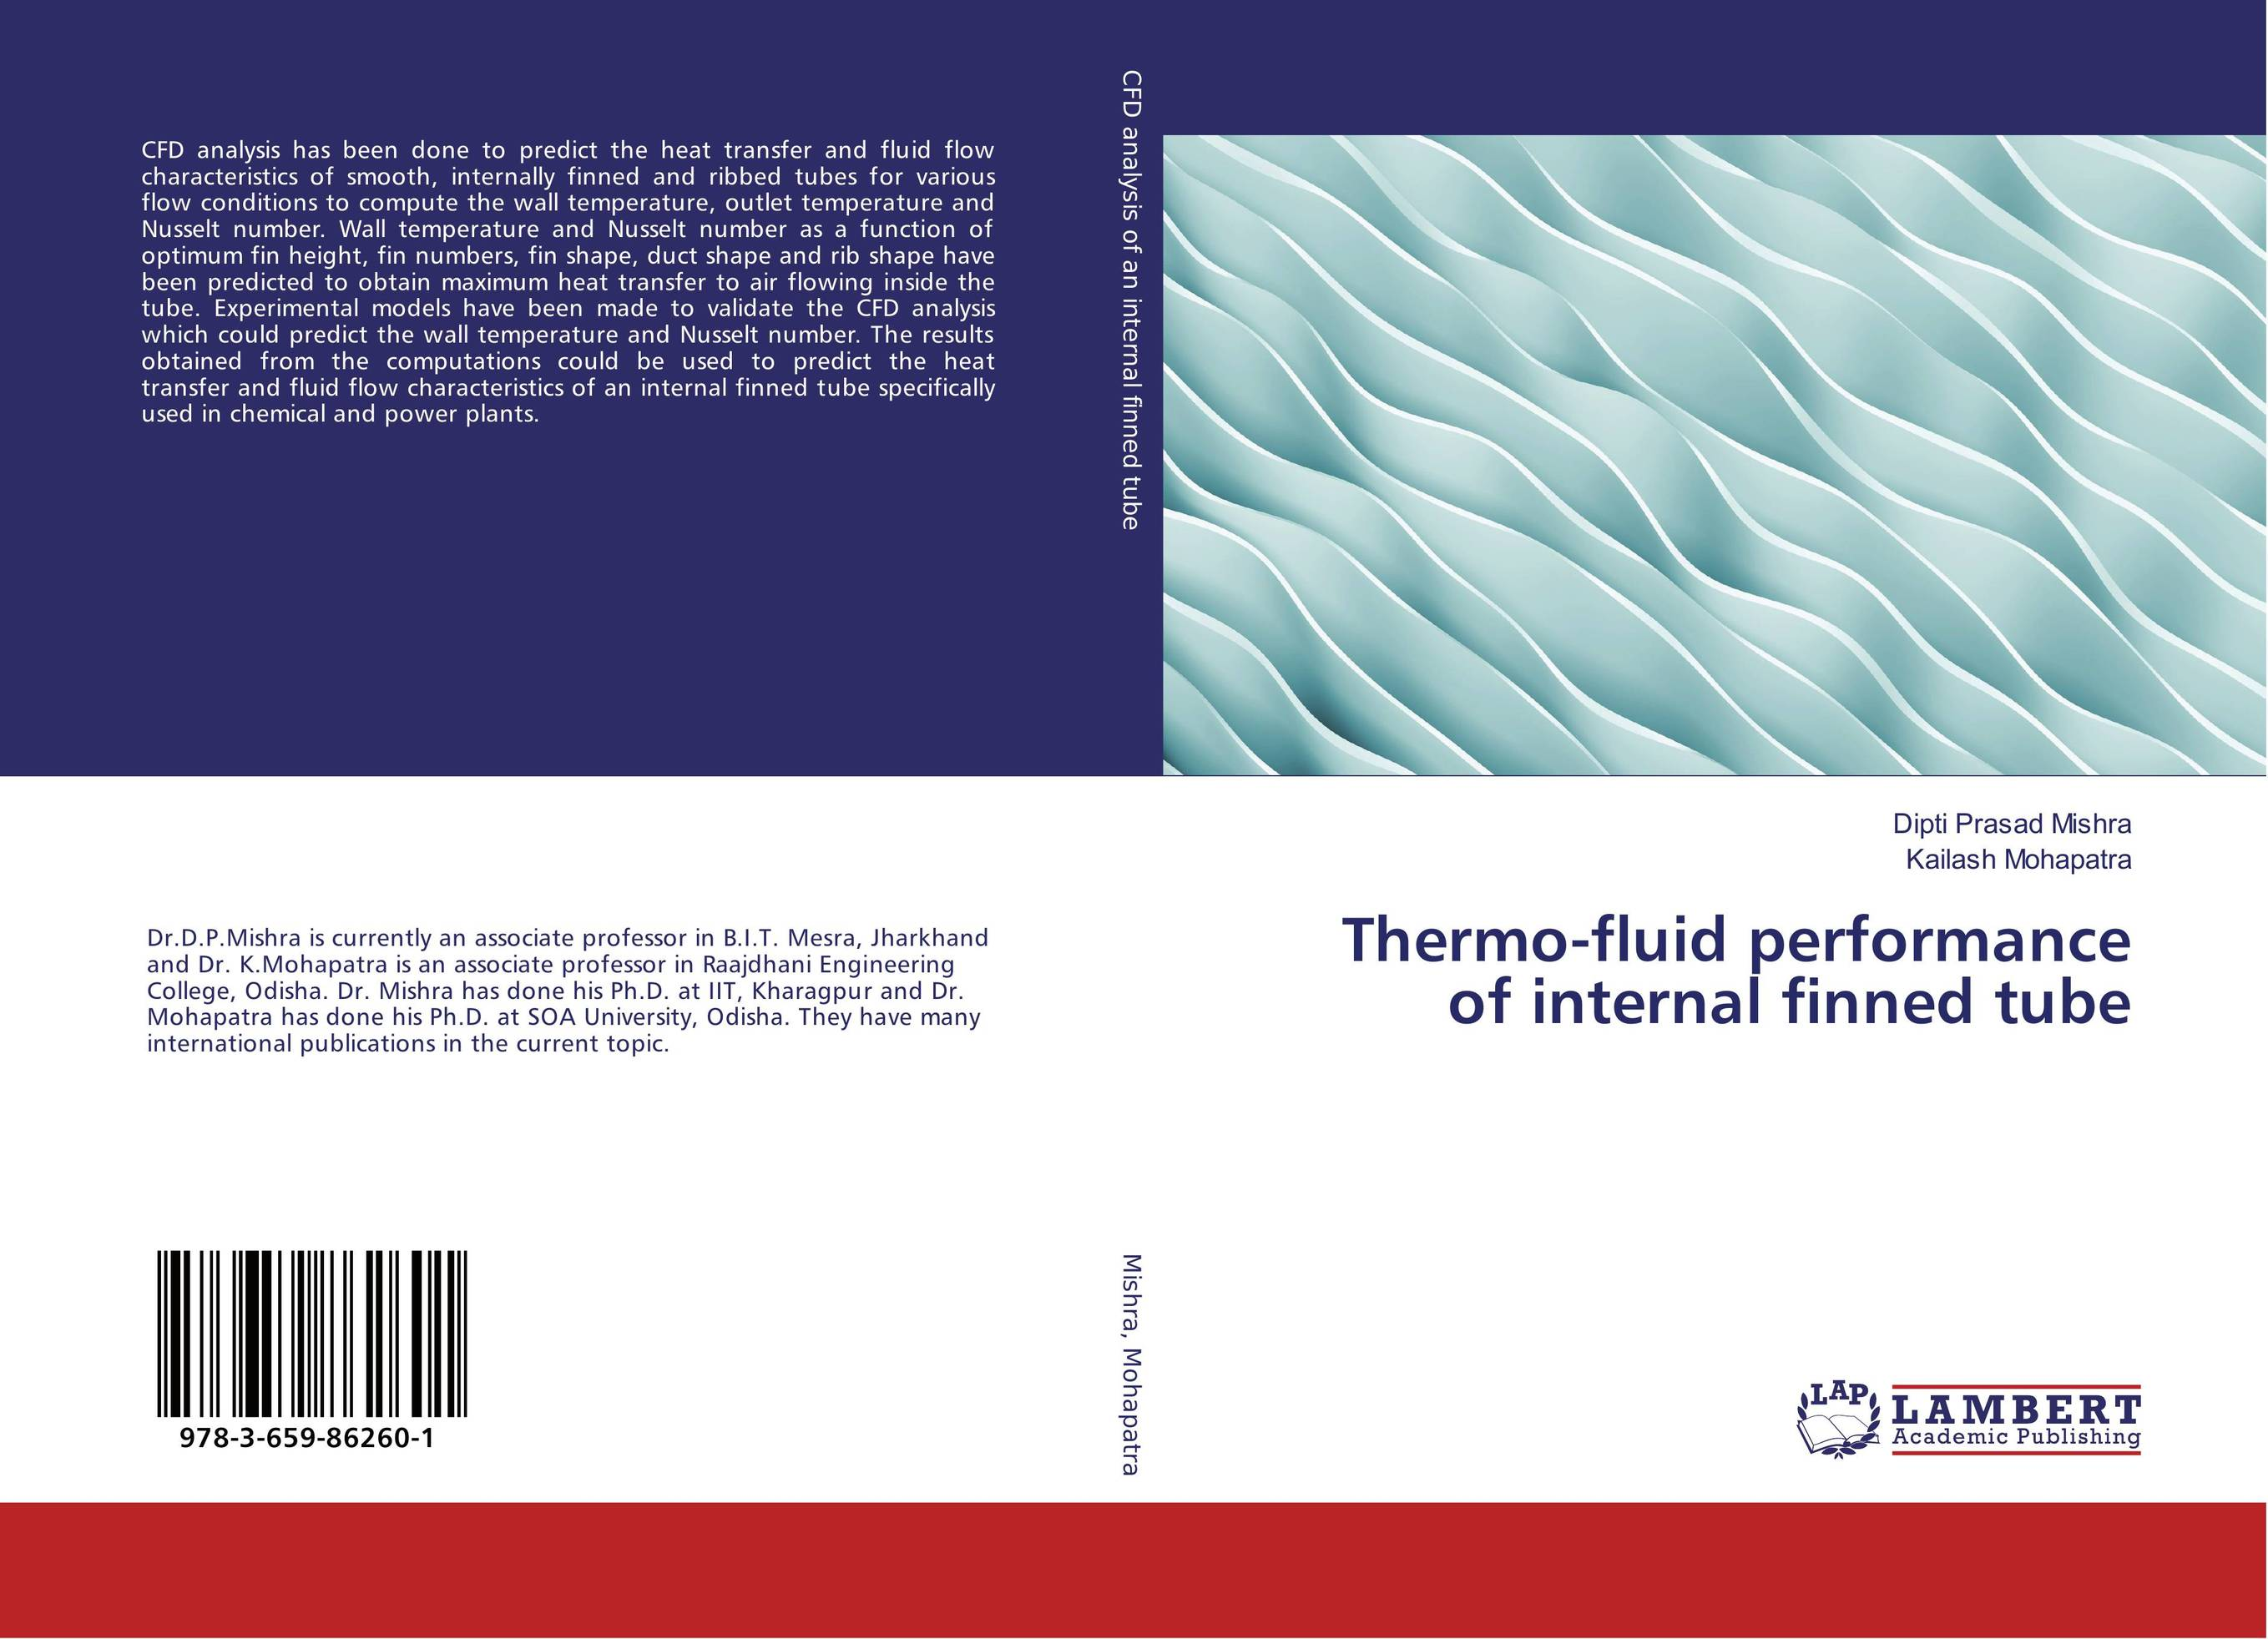 Thermo-fluid performance of internal finned tube tarek ahmed working guide to reservoir rock properties and fluid flow